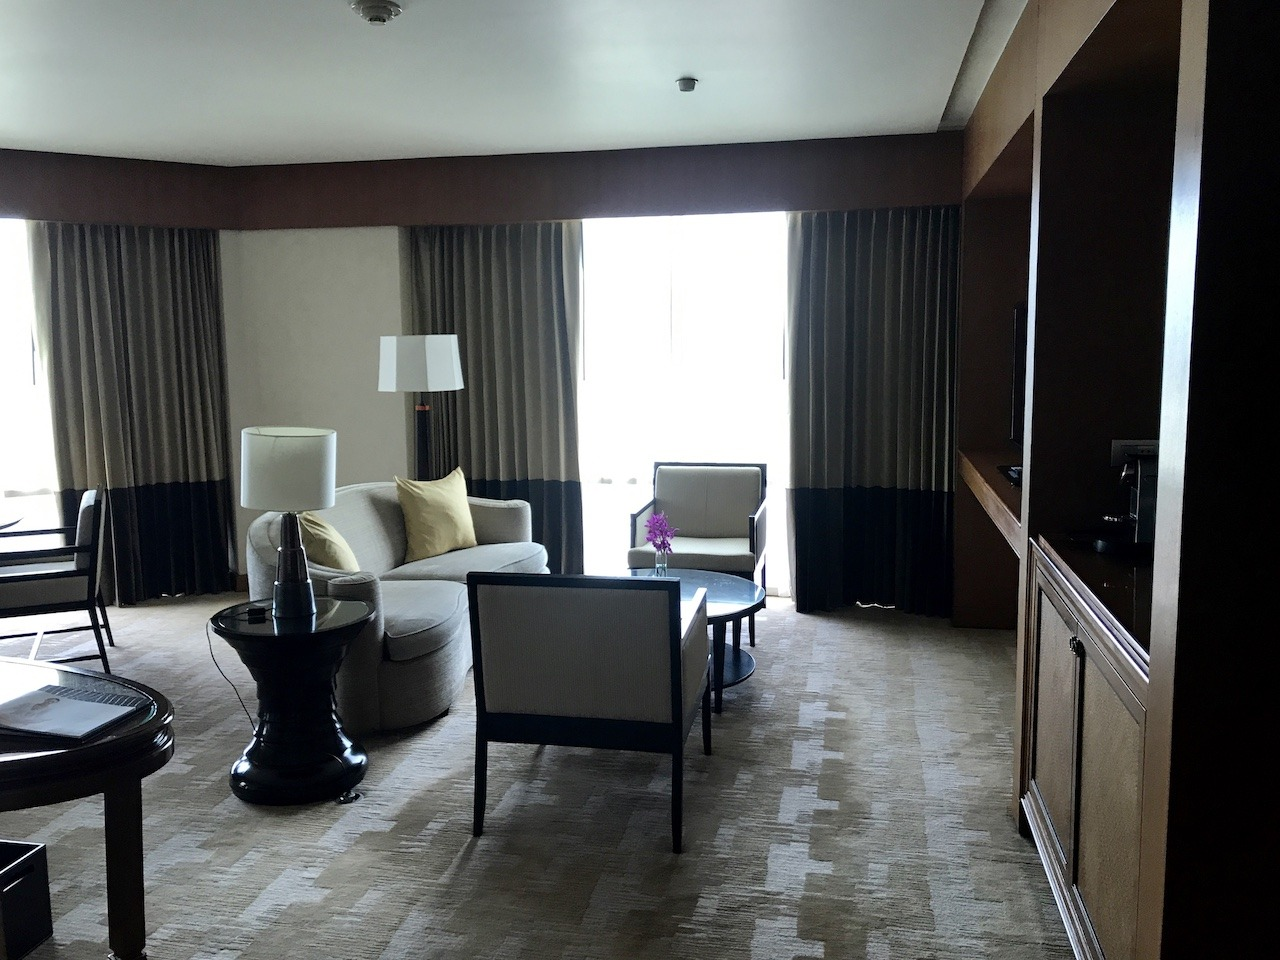 Suite living room from entrance